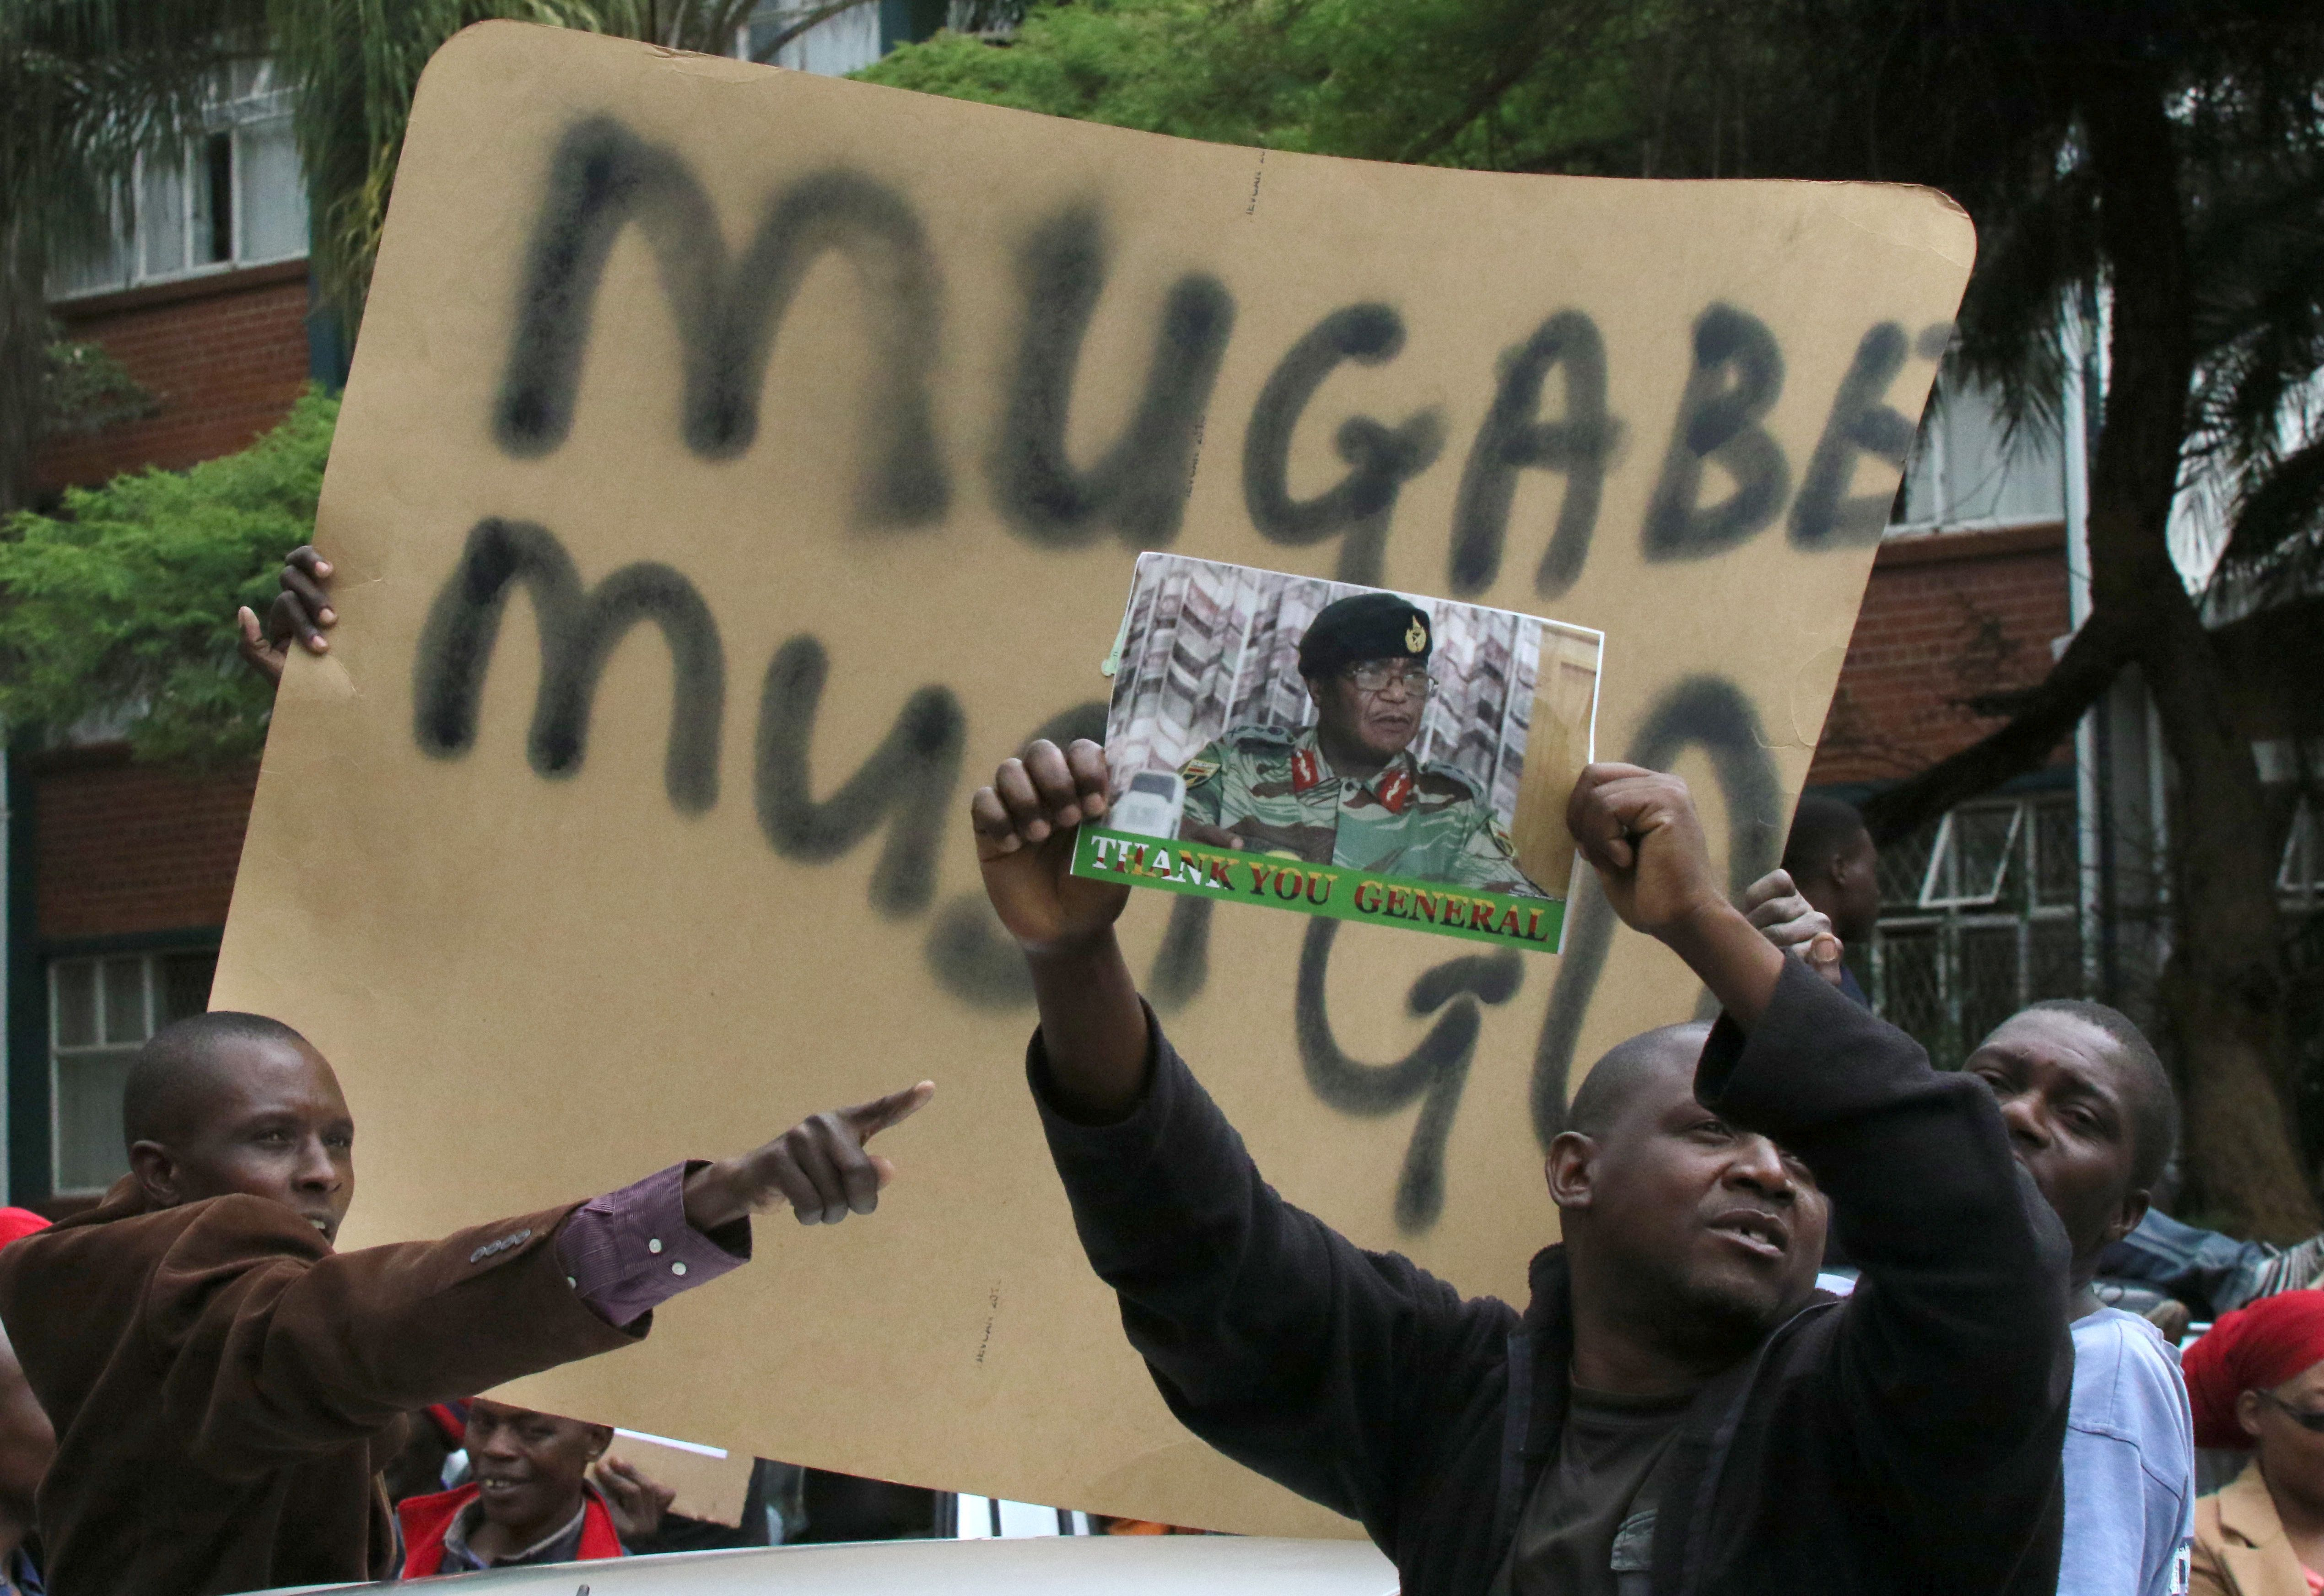 Protesters calling for Zimbabwean President Robert Mugabe to step down take to the streets in Harare, Zimbabwe, November 18, 2017. REUTERS/Philimon Bulawayo